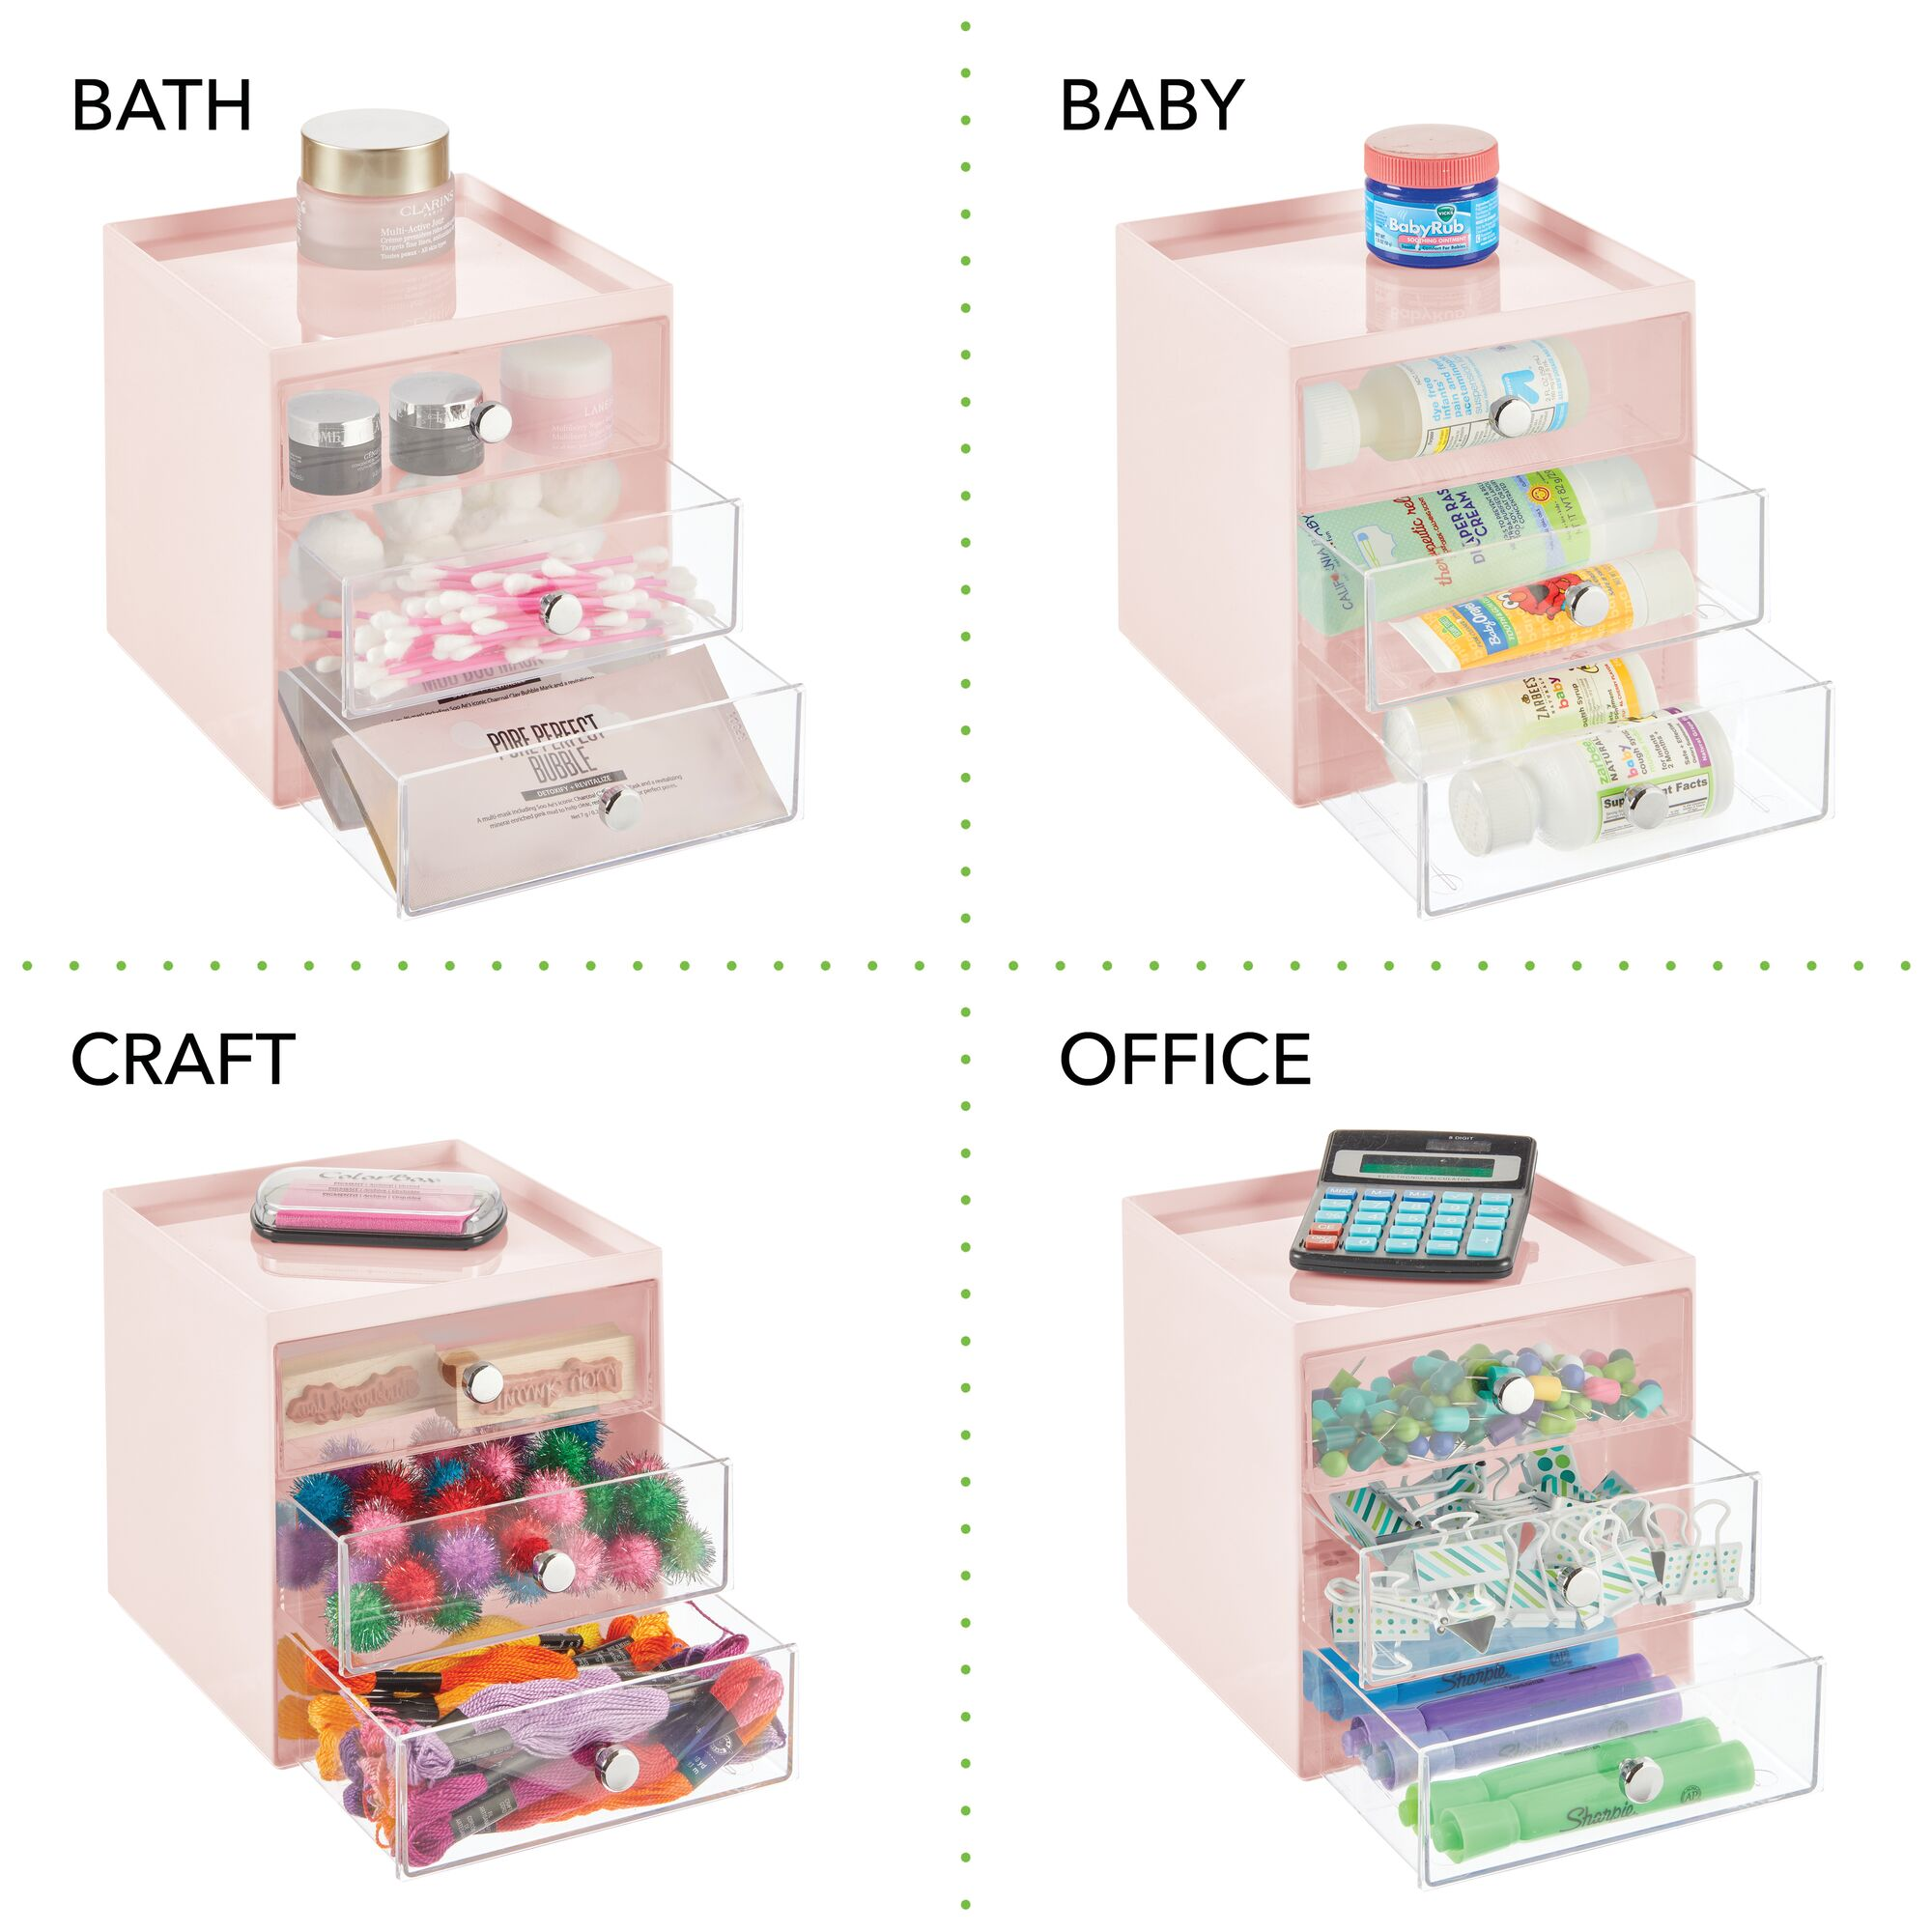 mDesign-Plastic-Makeup-Storage-Organizer-Cube-3-Drawers thumbnail 54